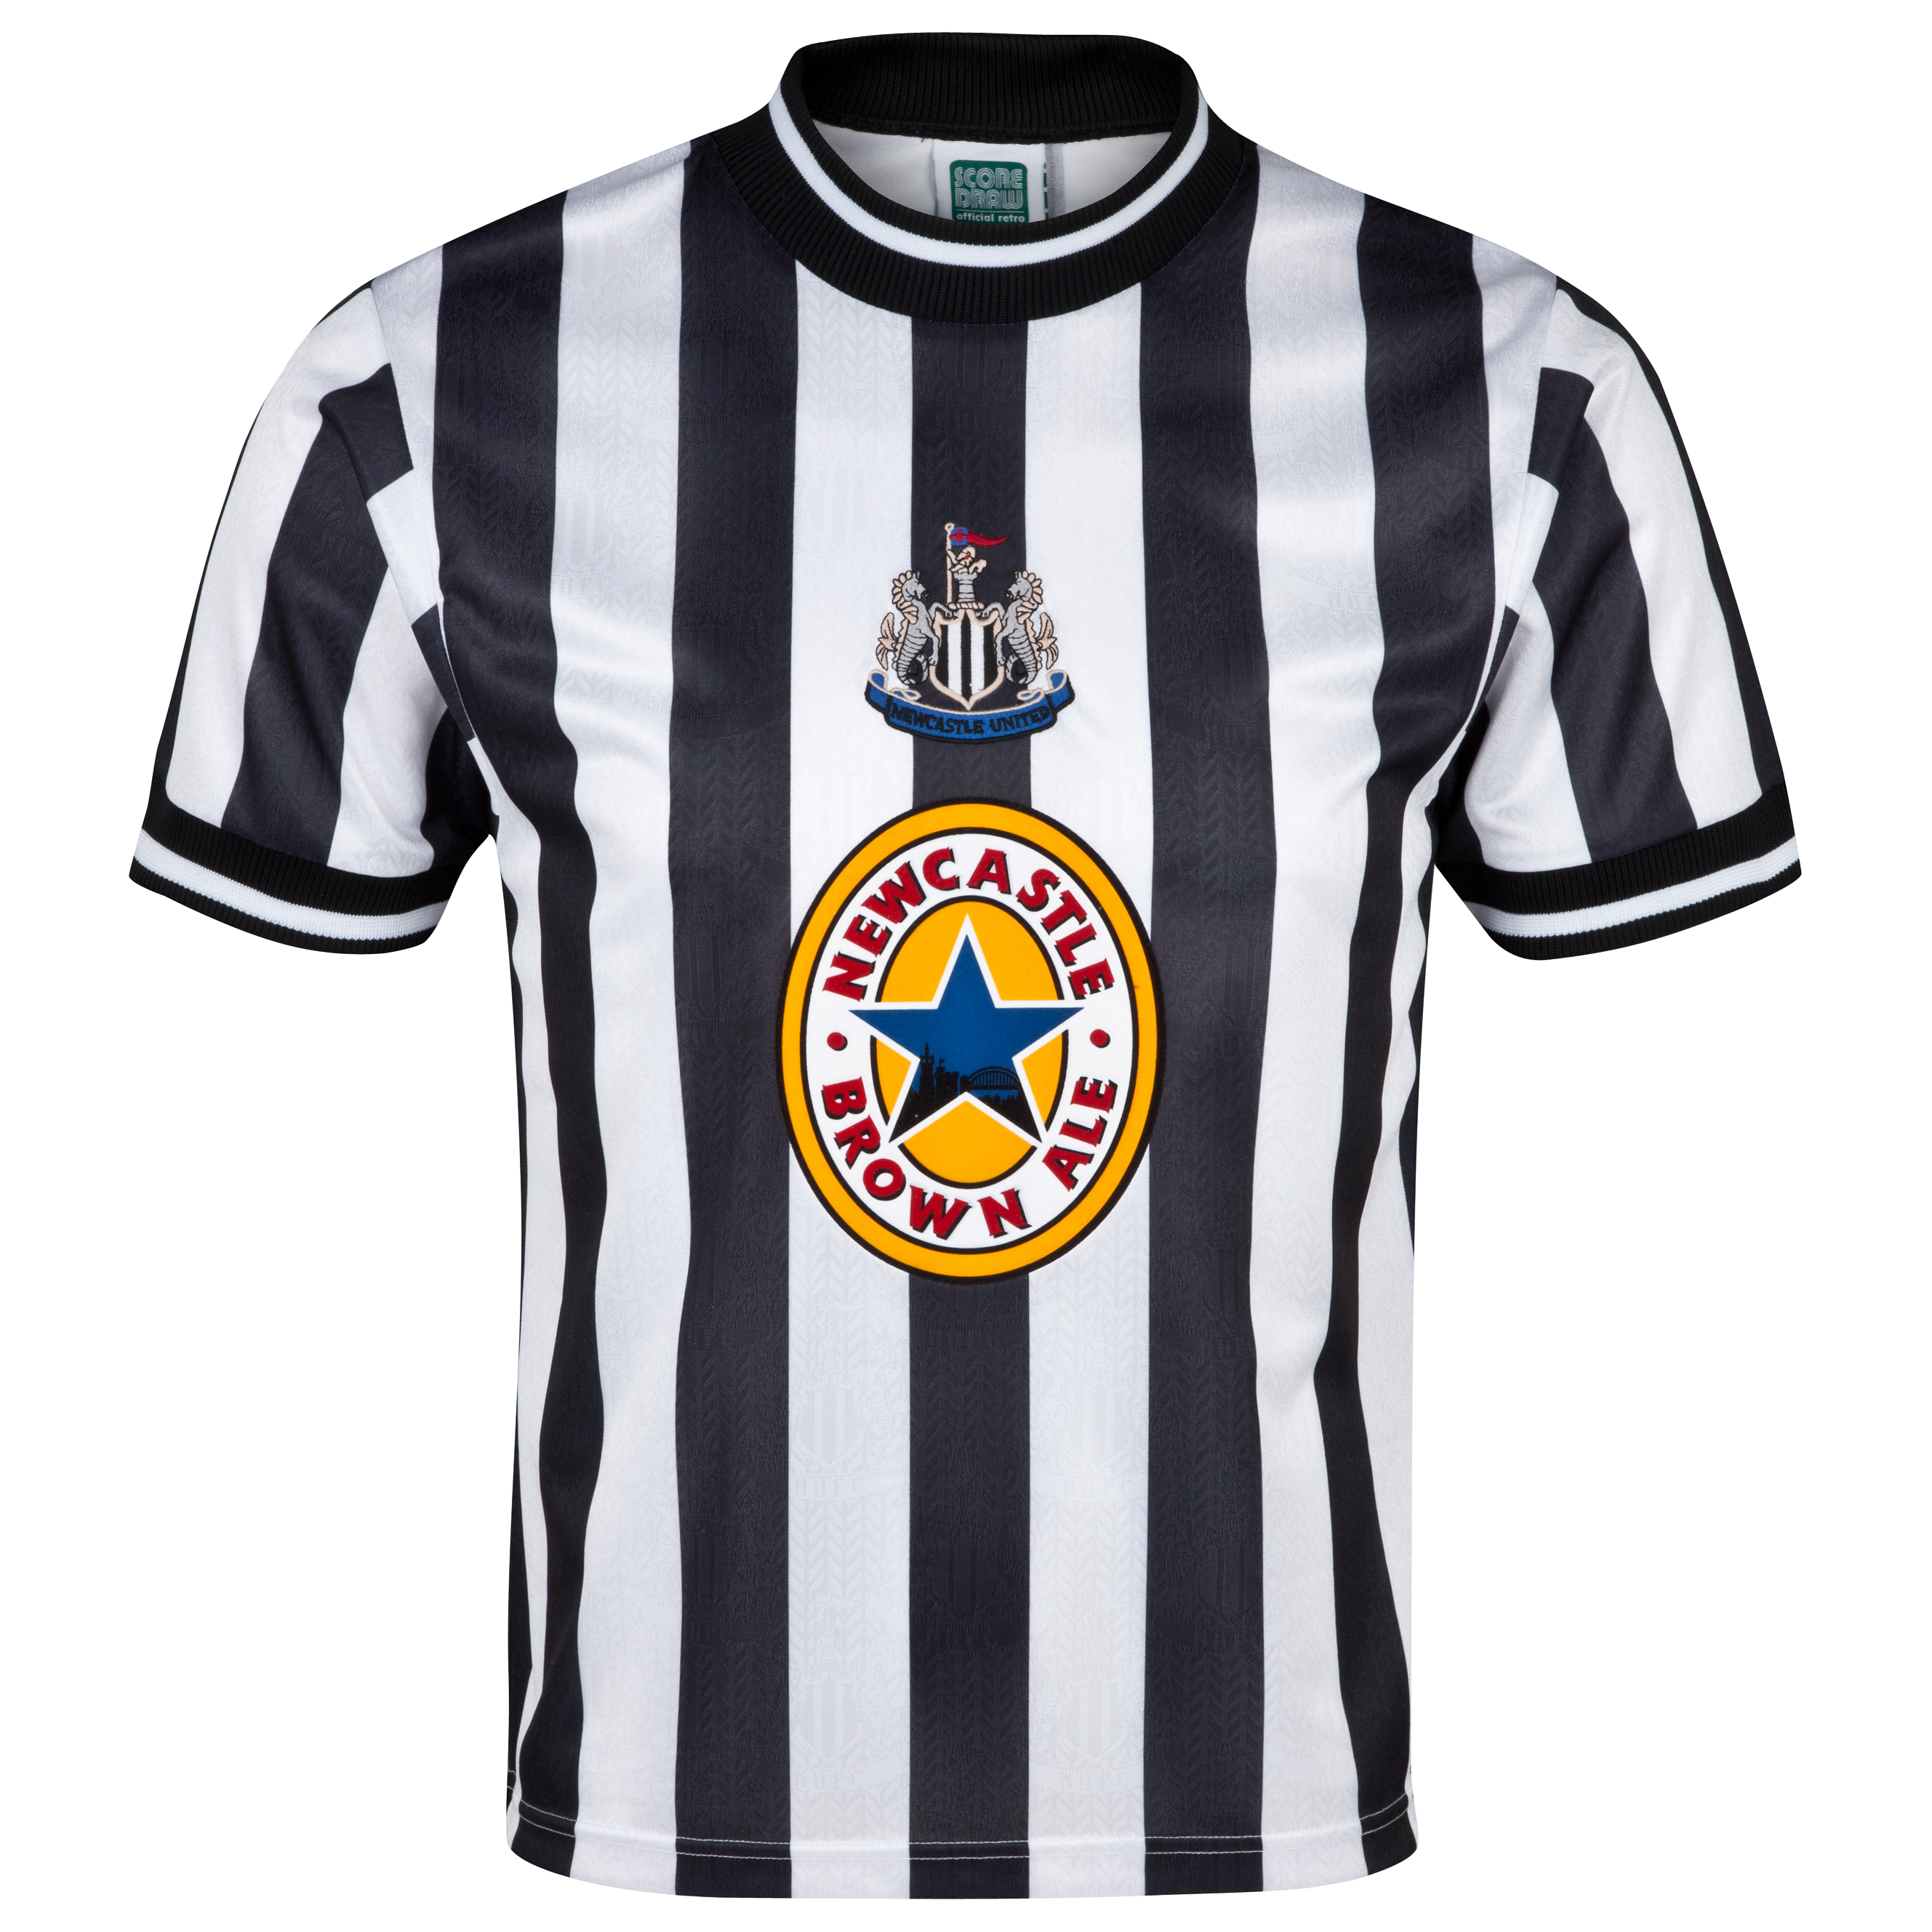 Newcastle United 1998 Shirt